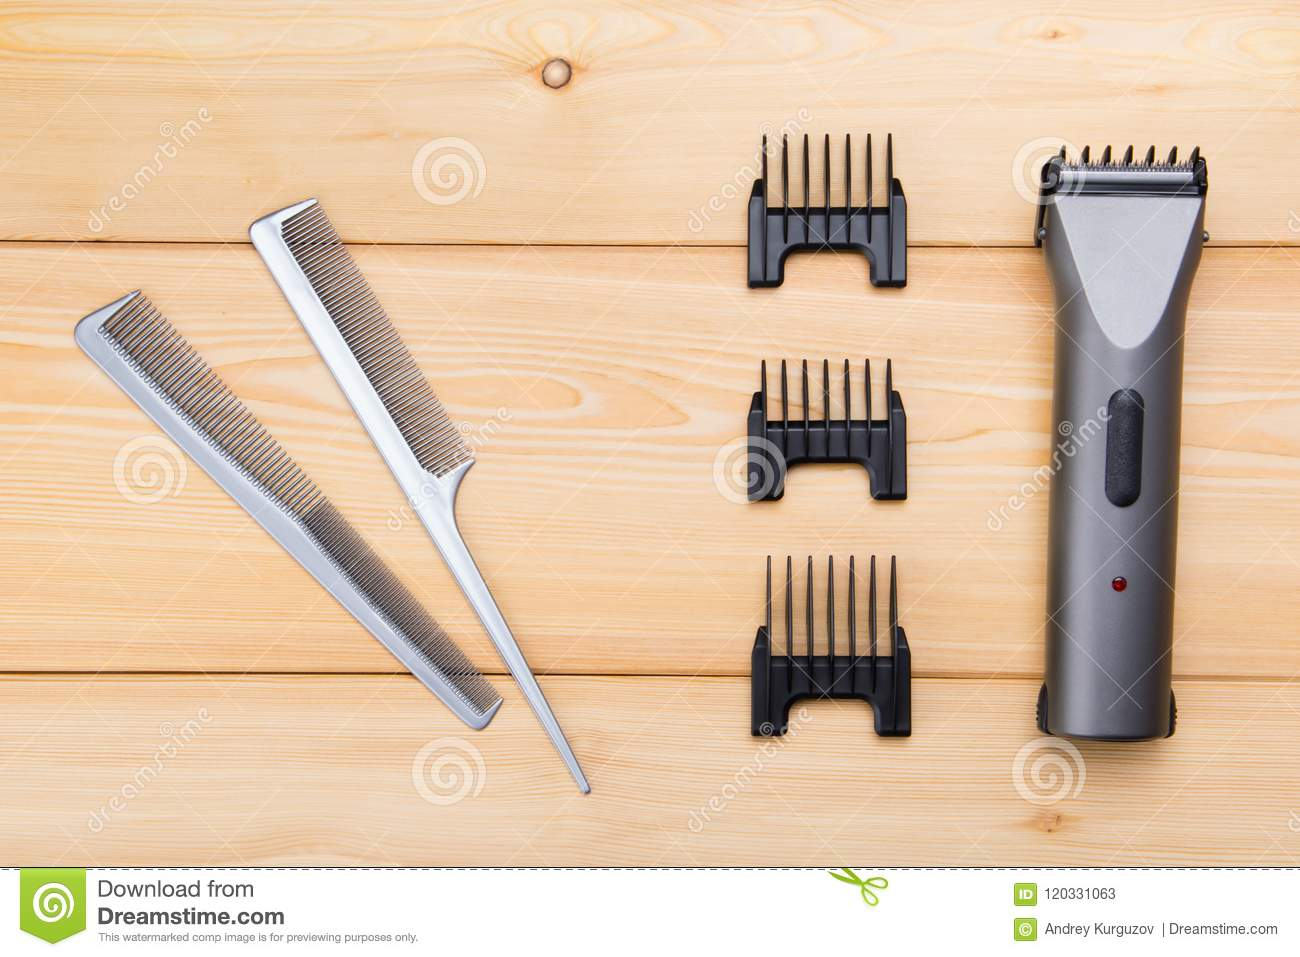 Two combs with attachments for electric cars, for hair cutting, on wooden boards